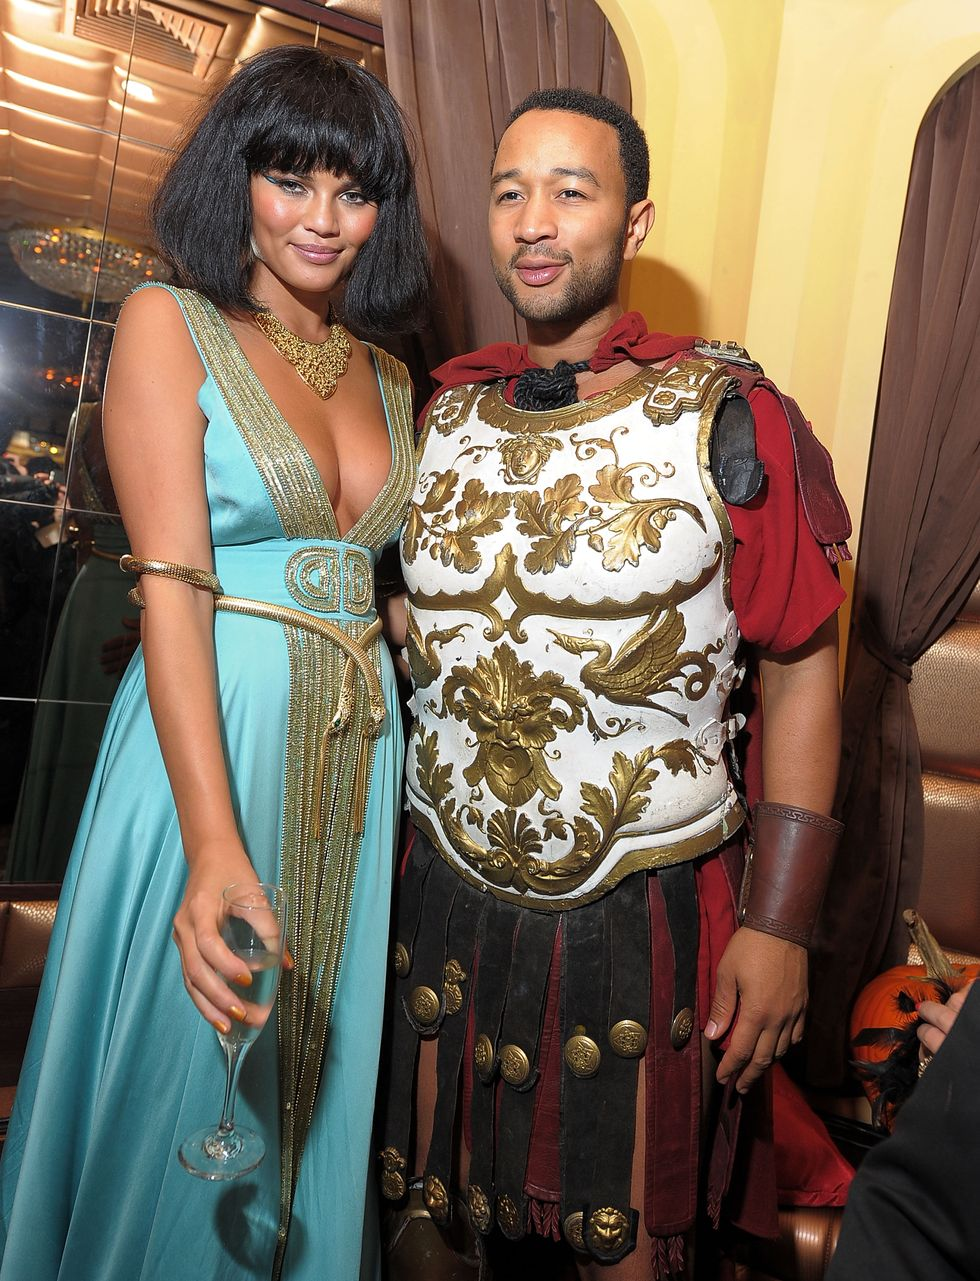 Chrissy Teigen and John Legend - Antony and Cleopatra Model Christine Teigen and musician John Legend attended Heidi Klum's 2010 Halloween party in New York City dressed up as Antony and Cleopatra. I mean, check out that armor.